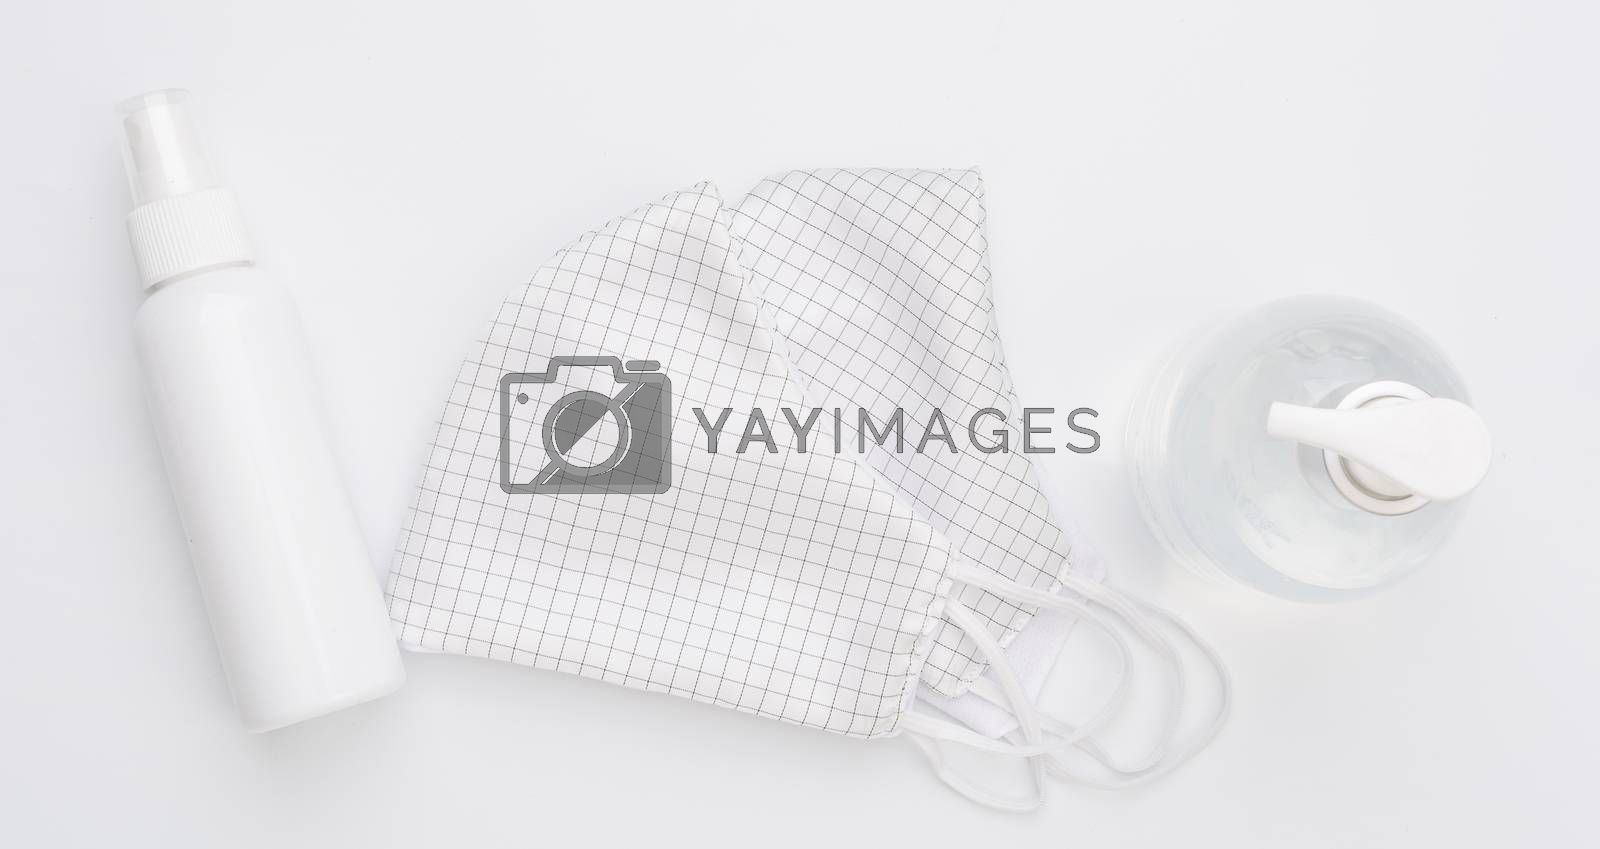 Fabric cloth mask for wearing germ protection  and gel alcohol or hand sanitizer spray bottle for washing hand  to protect from corona virus set on white background